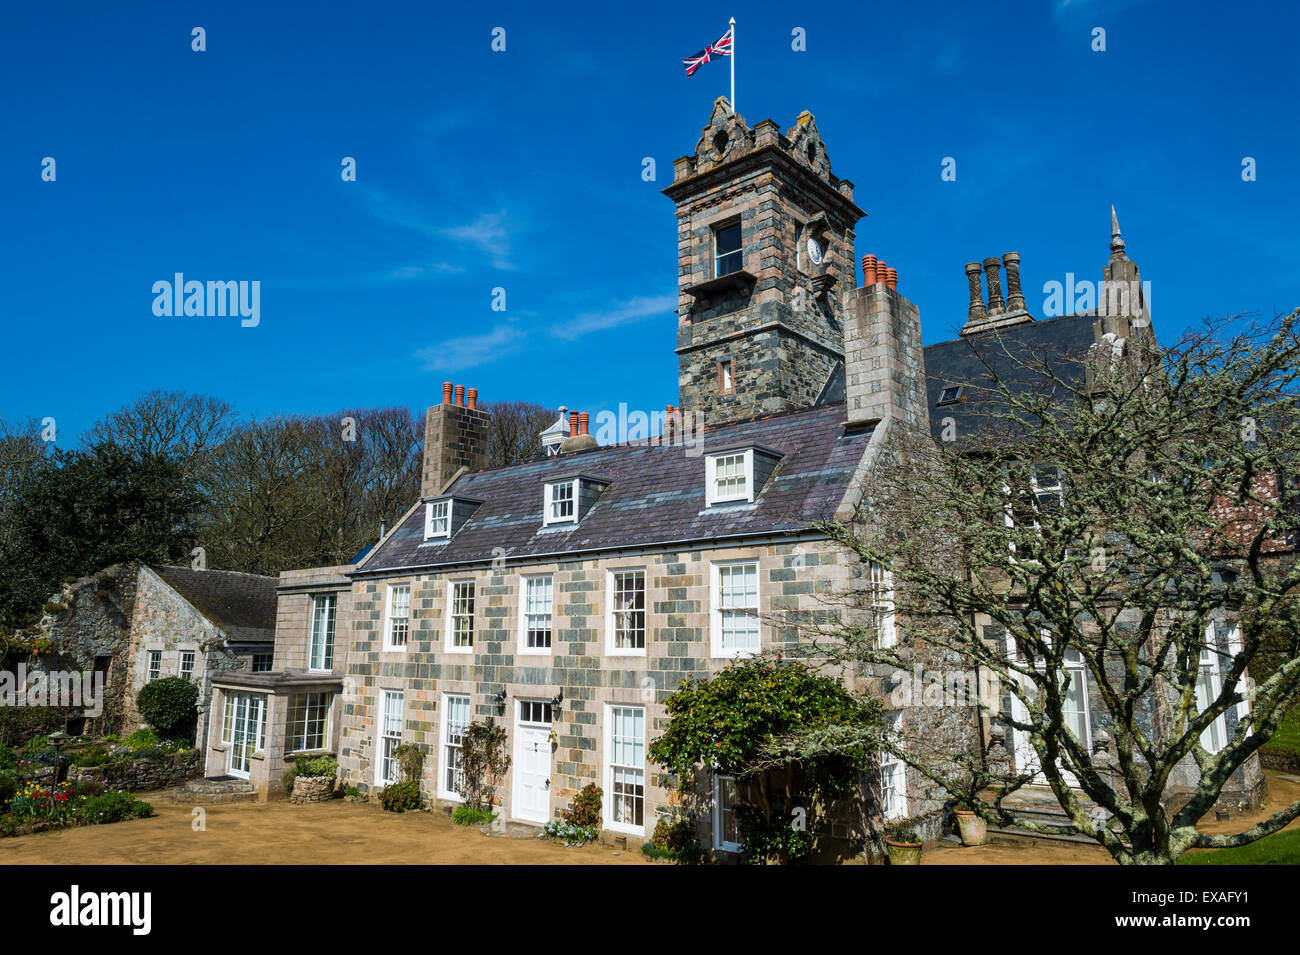 La Seigneurie House And Gardens Sark Channel Islands United Stock Photo Royalty Free Image